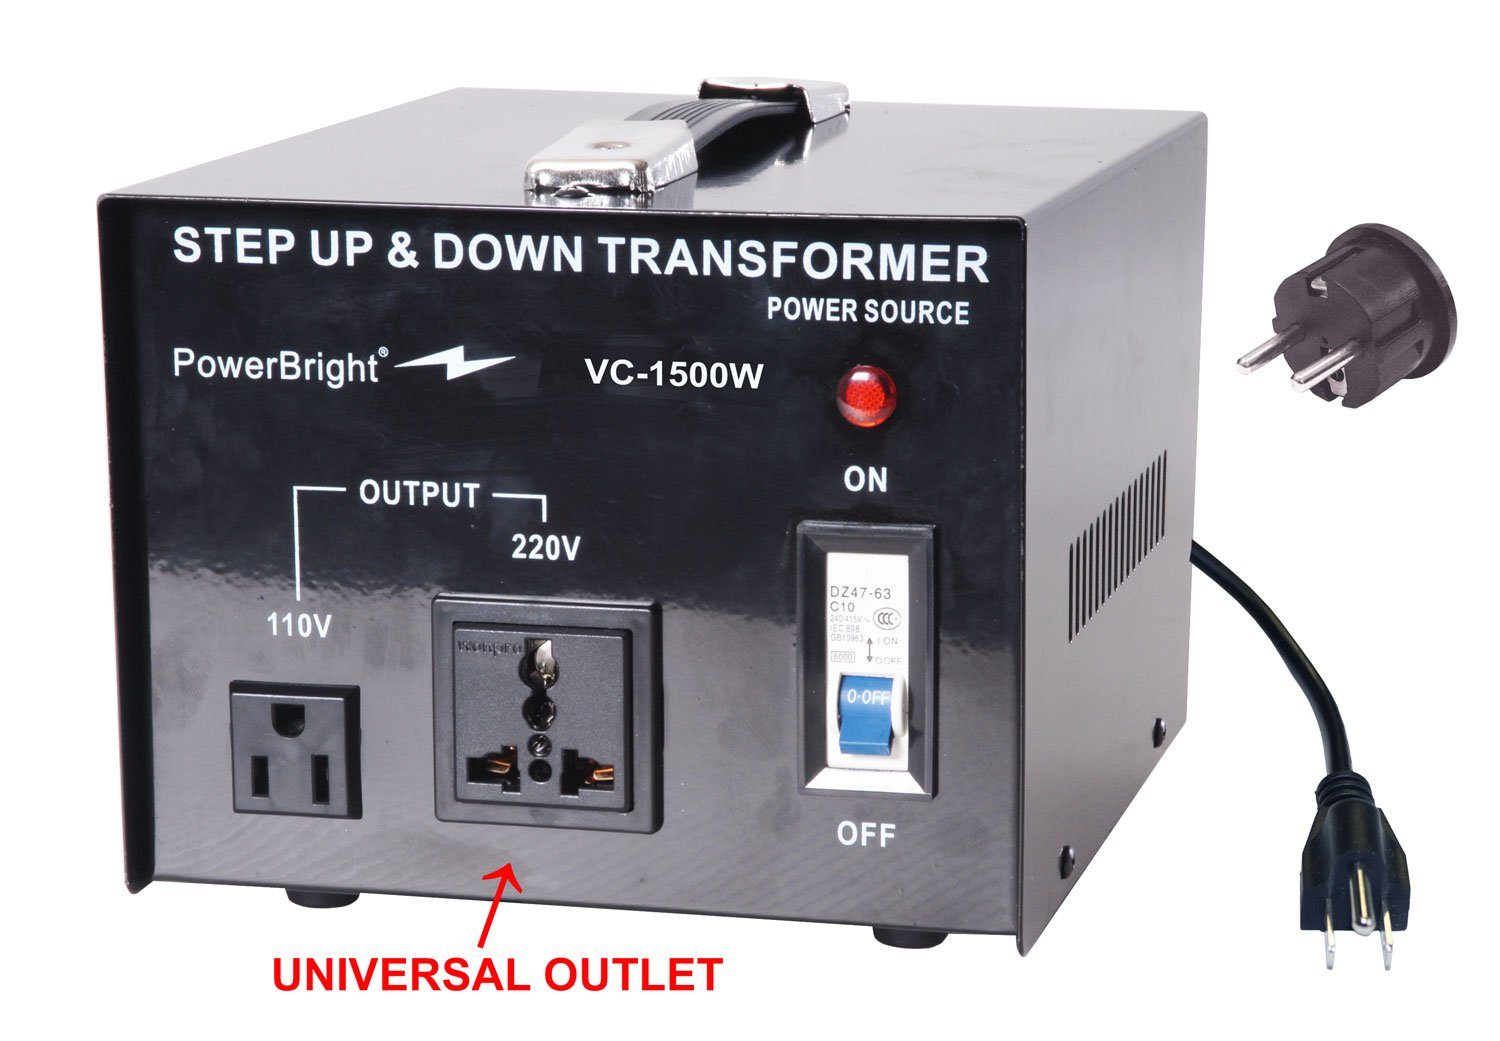 Power Bright Vc1500w Voltage Transformer 1500 Watt Step Led Driver Circuit At 220v 110v Mains Diagram Up Down Converter 110 120 Volt 220 240 Vc Garden Outdoor